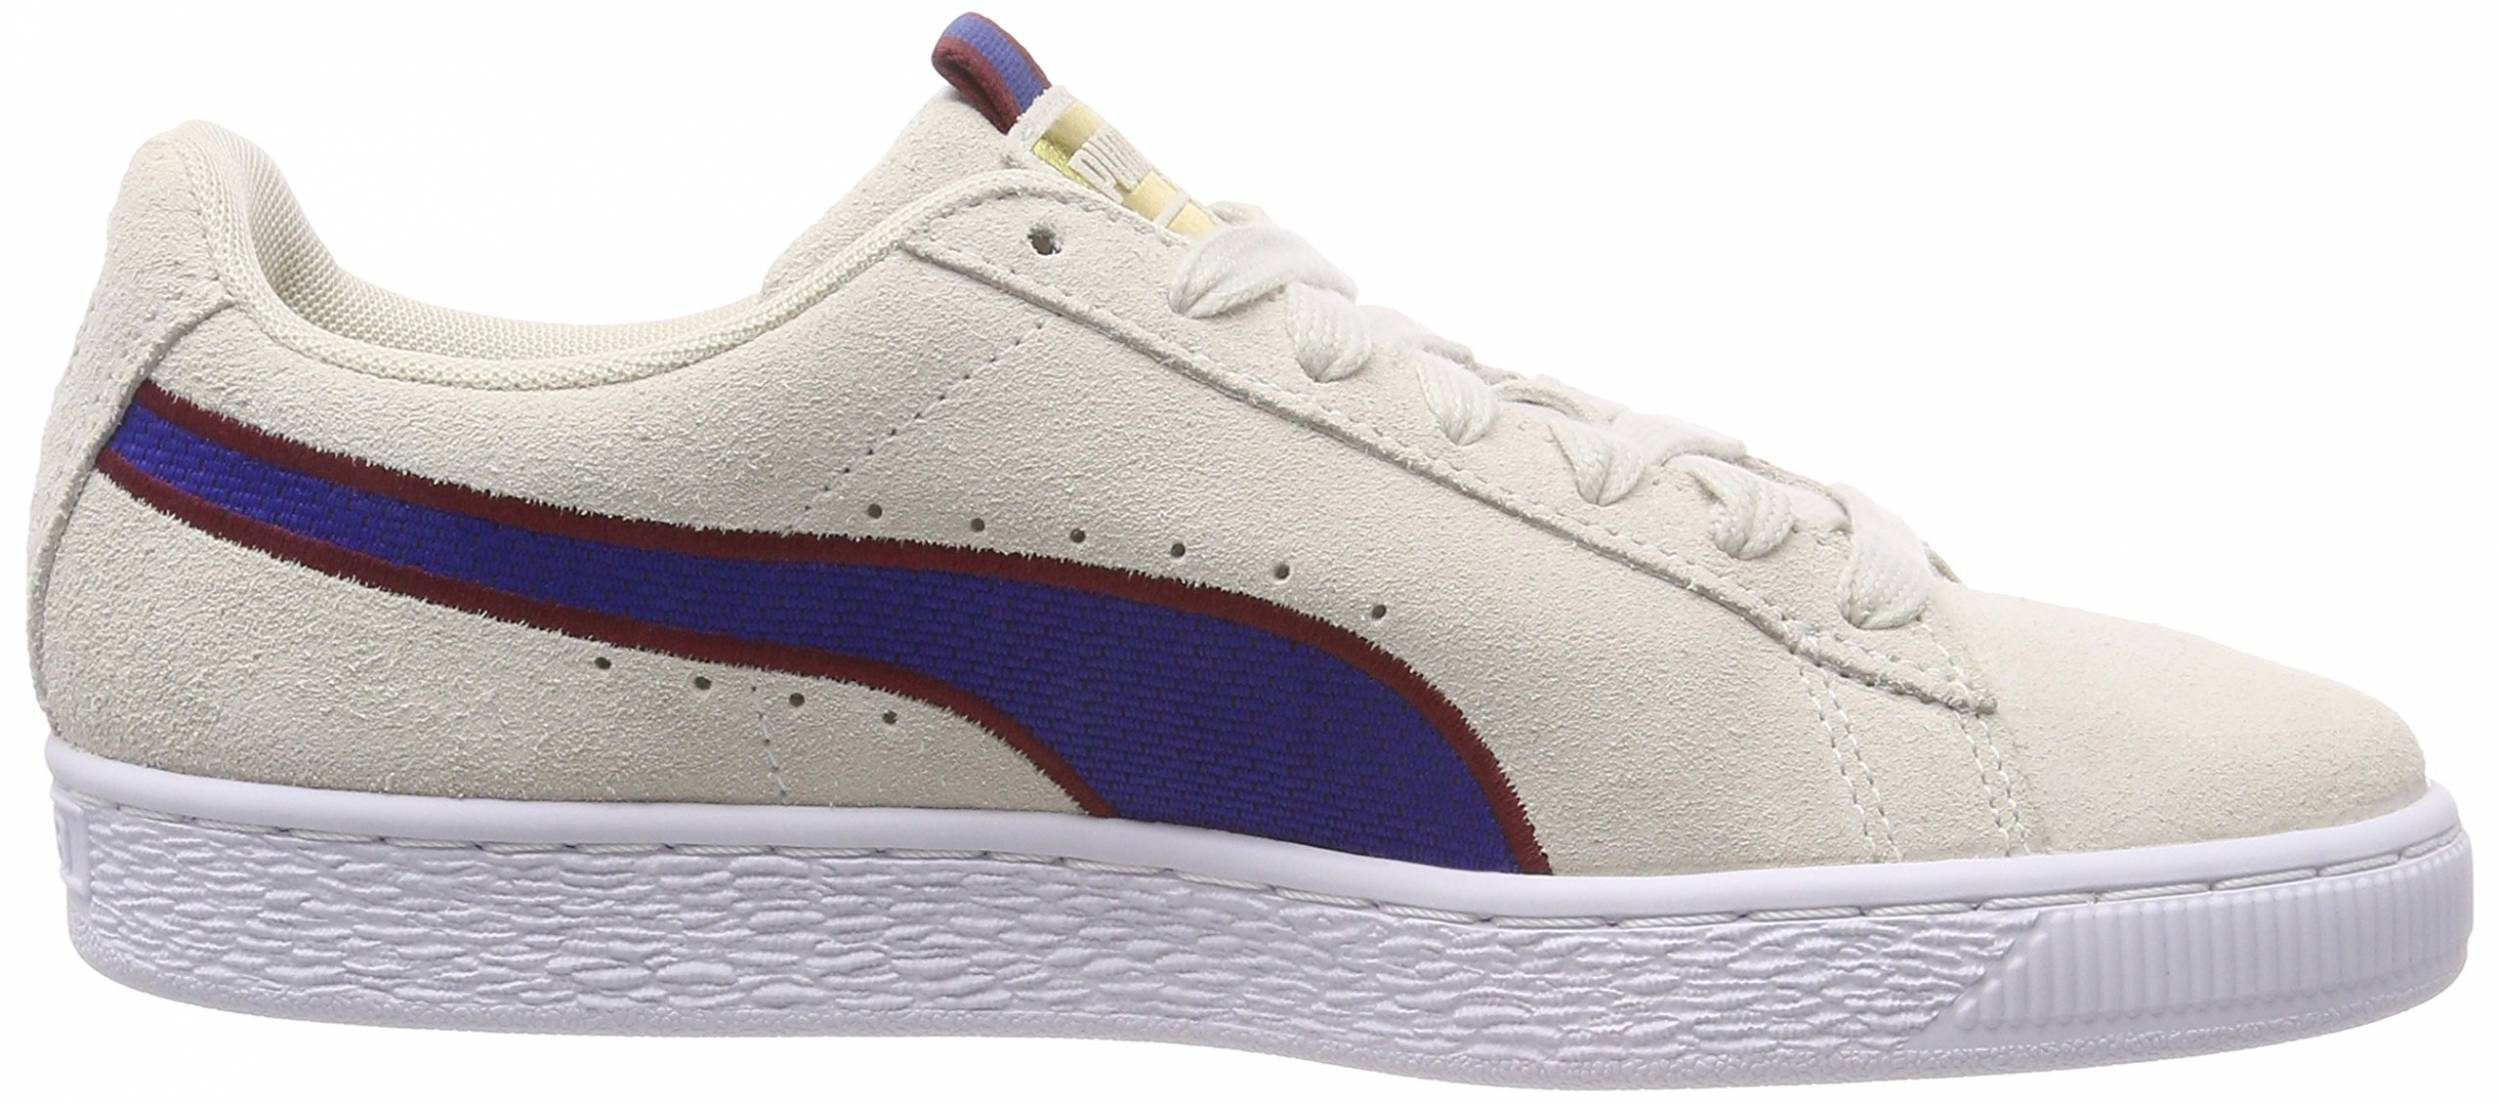 Puma Suede Classic Sport Stripes sneakers in beige (only $65 ...